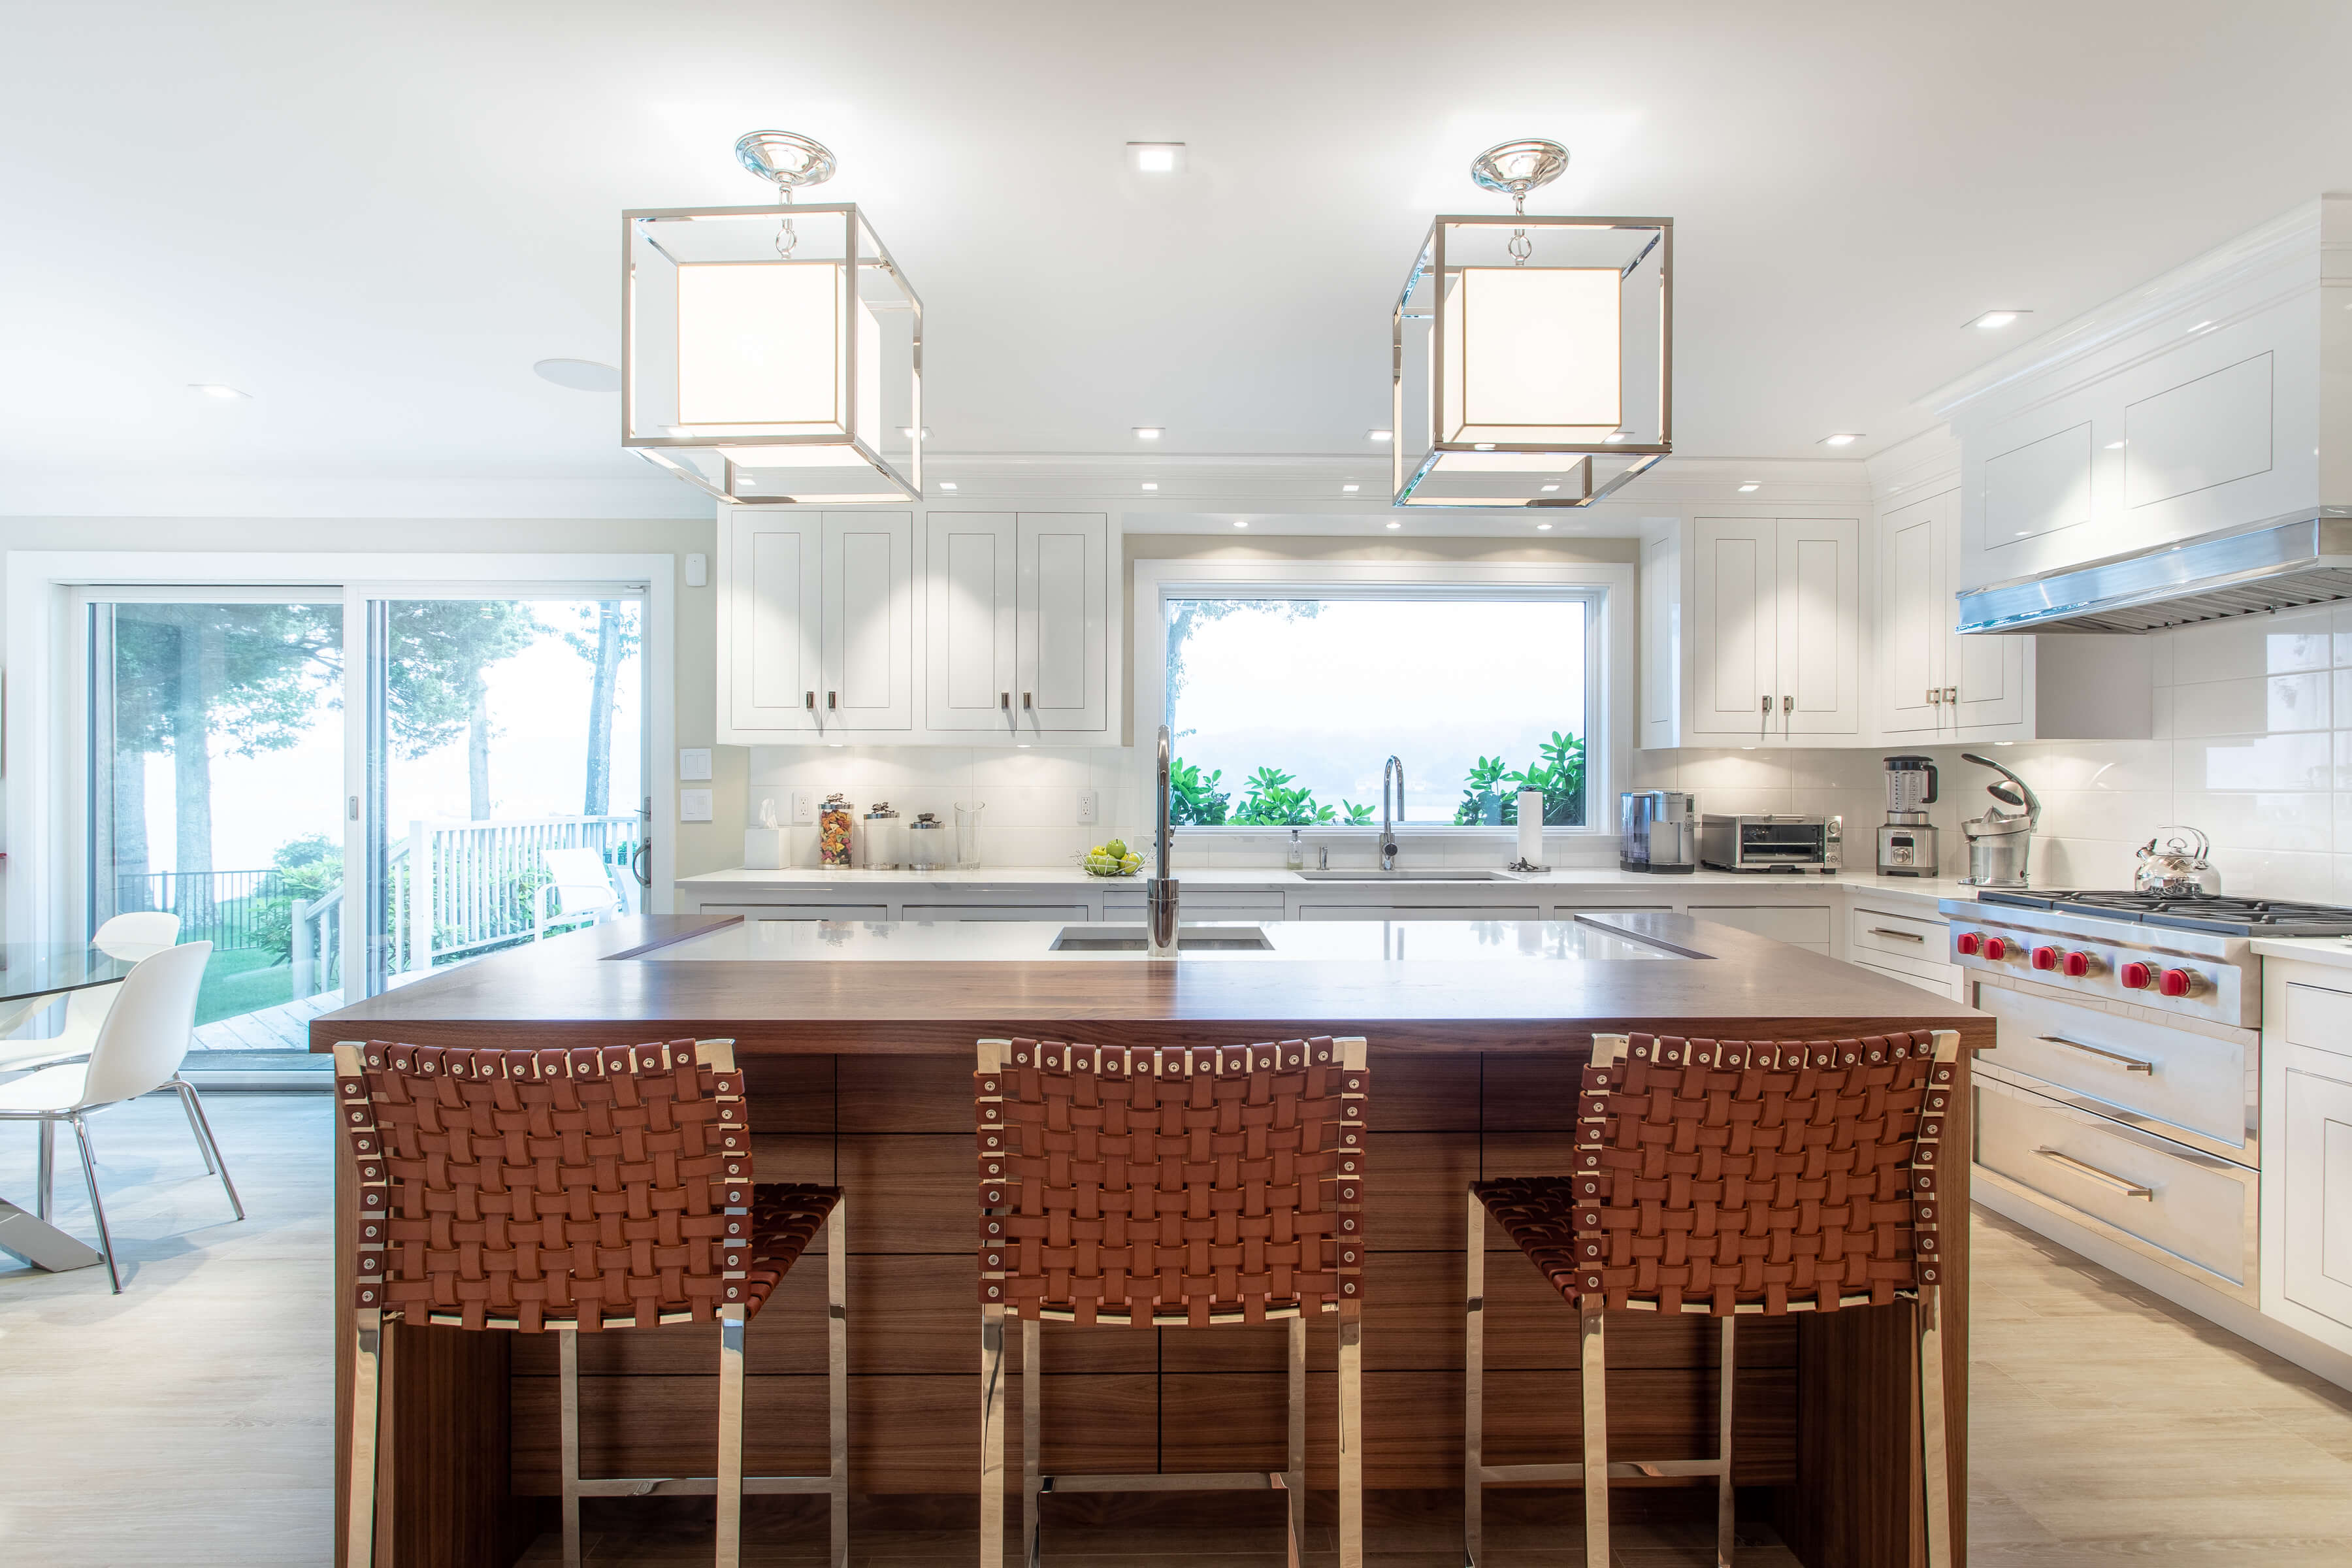 om Luxury Kitchen with Walnut and Maple Cabinets, (Revelane style cabinets) and Rift Walnut cabinets walnut kitchen island With Quartz White Counter Top fusion